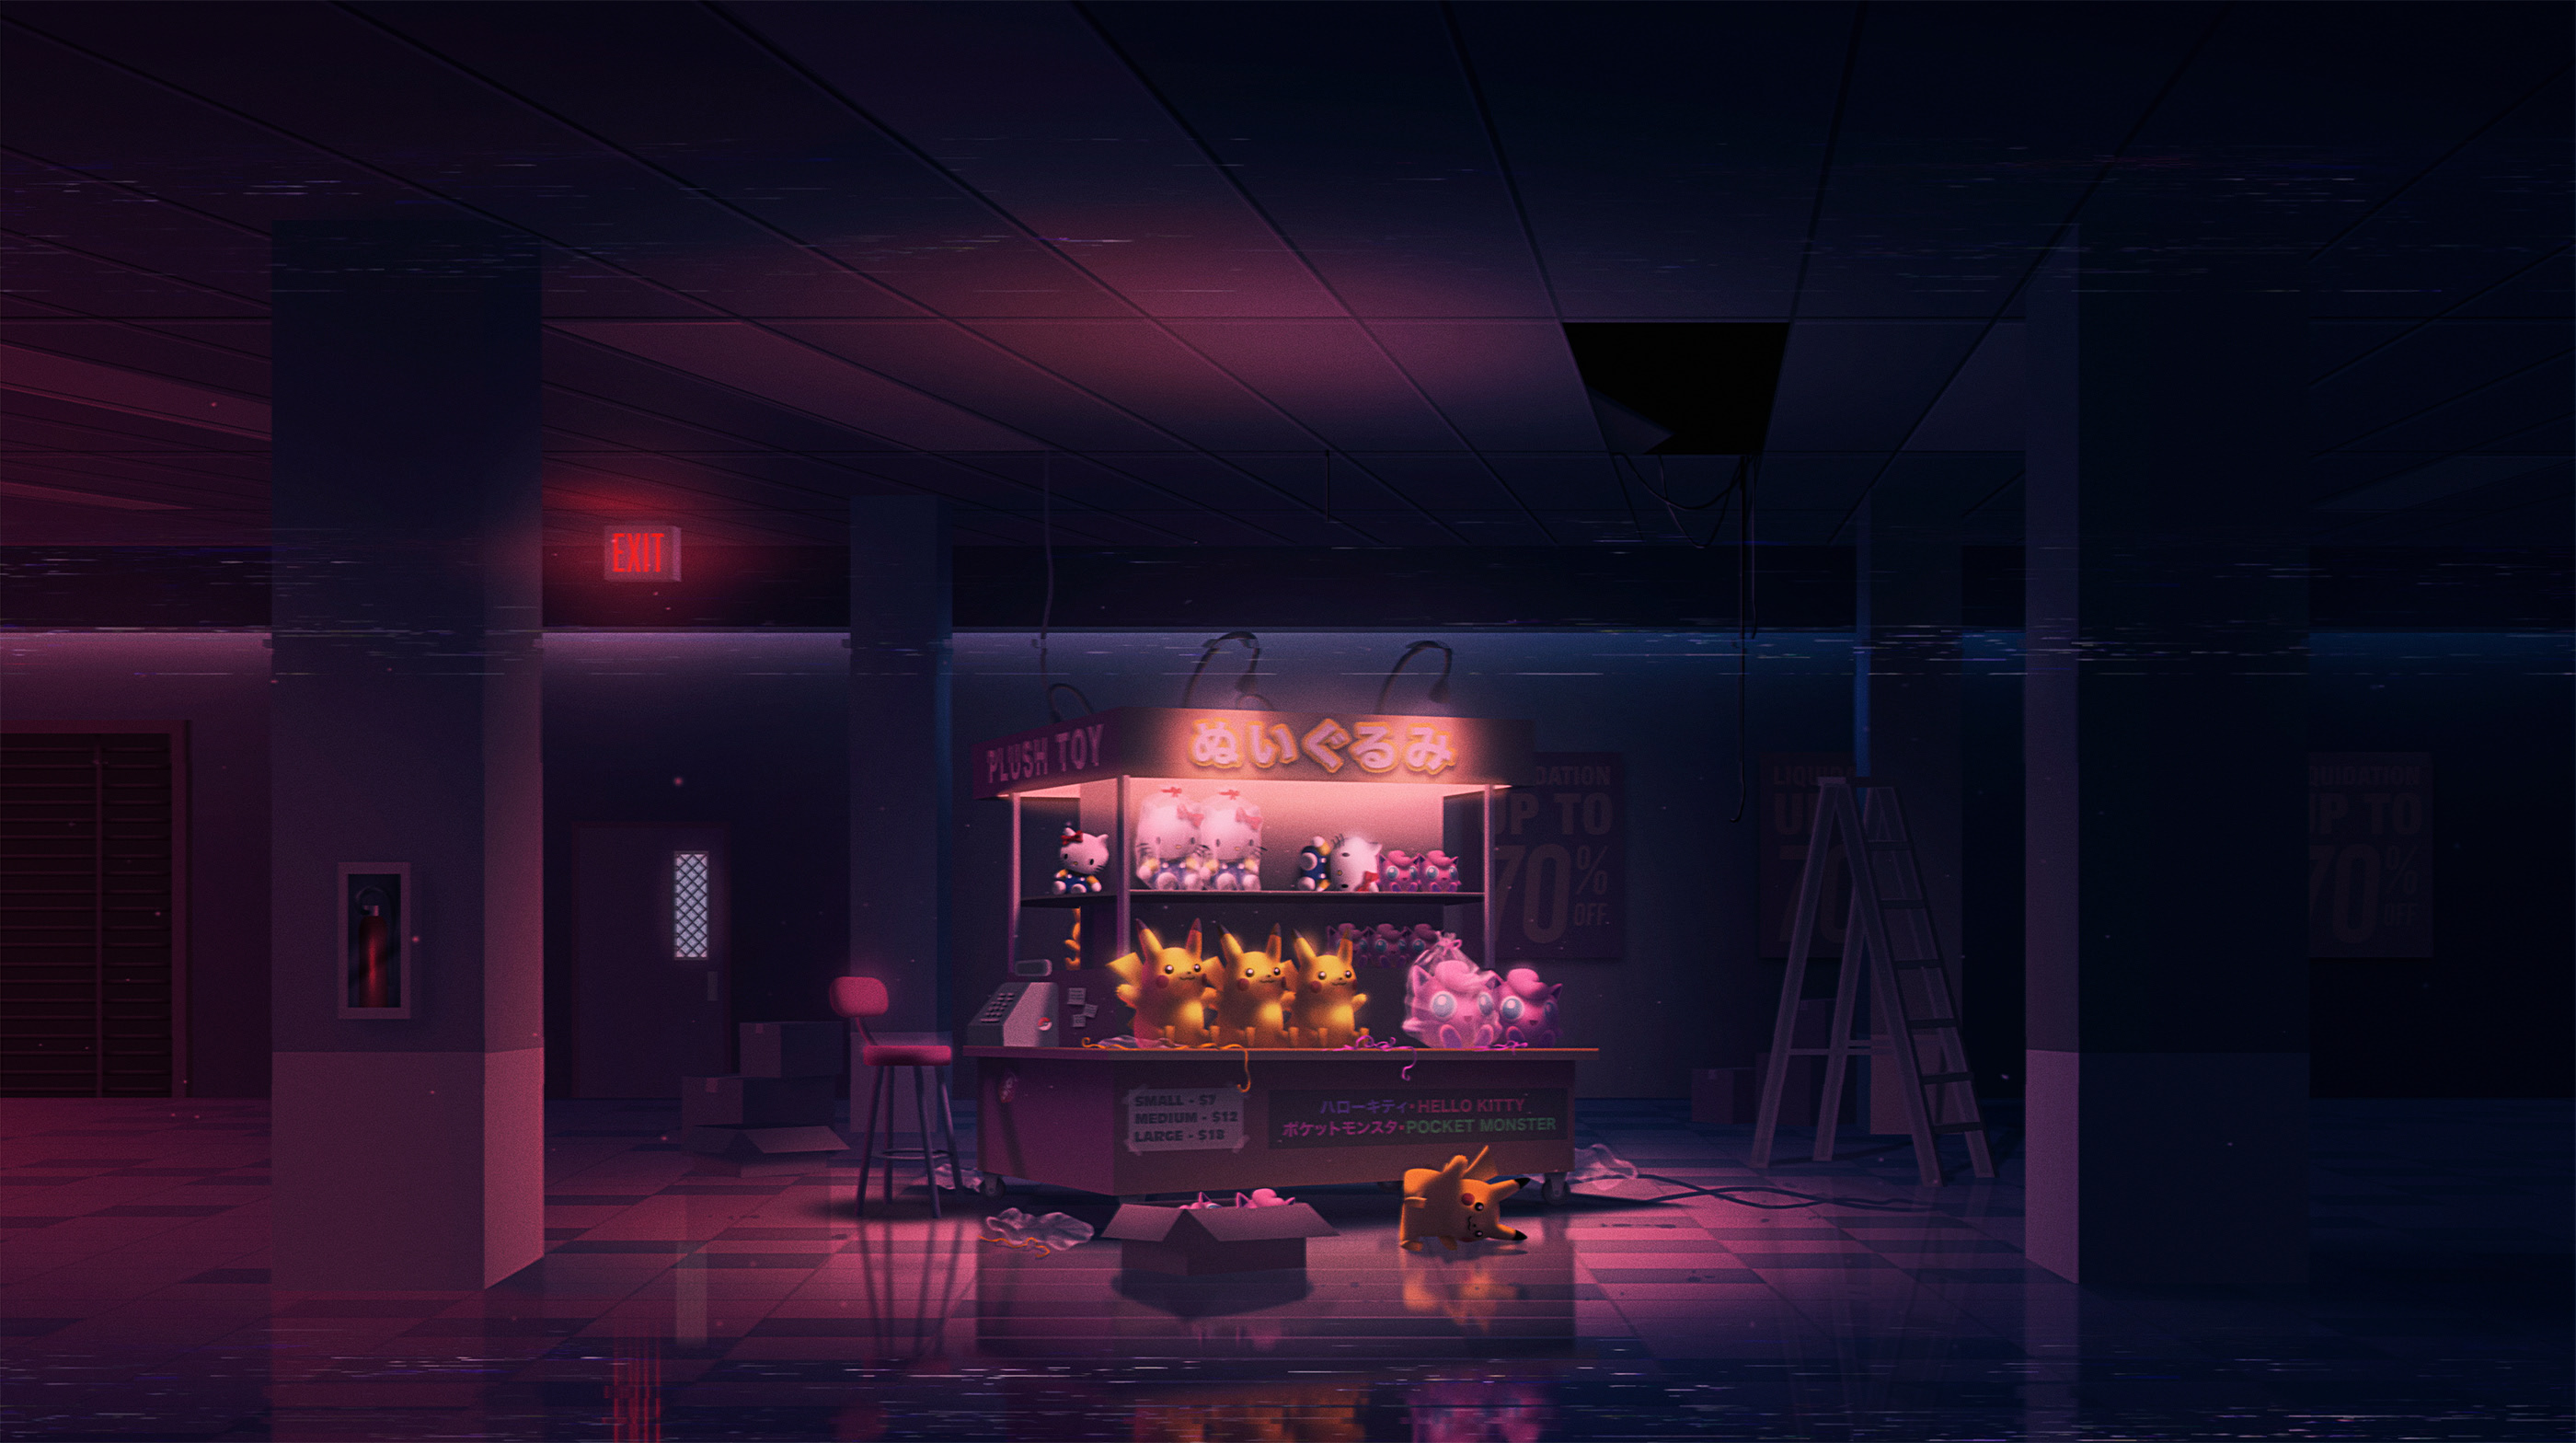 Step Inside a Vintage Video Game By Aaron Campbell